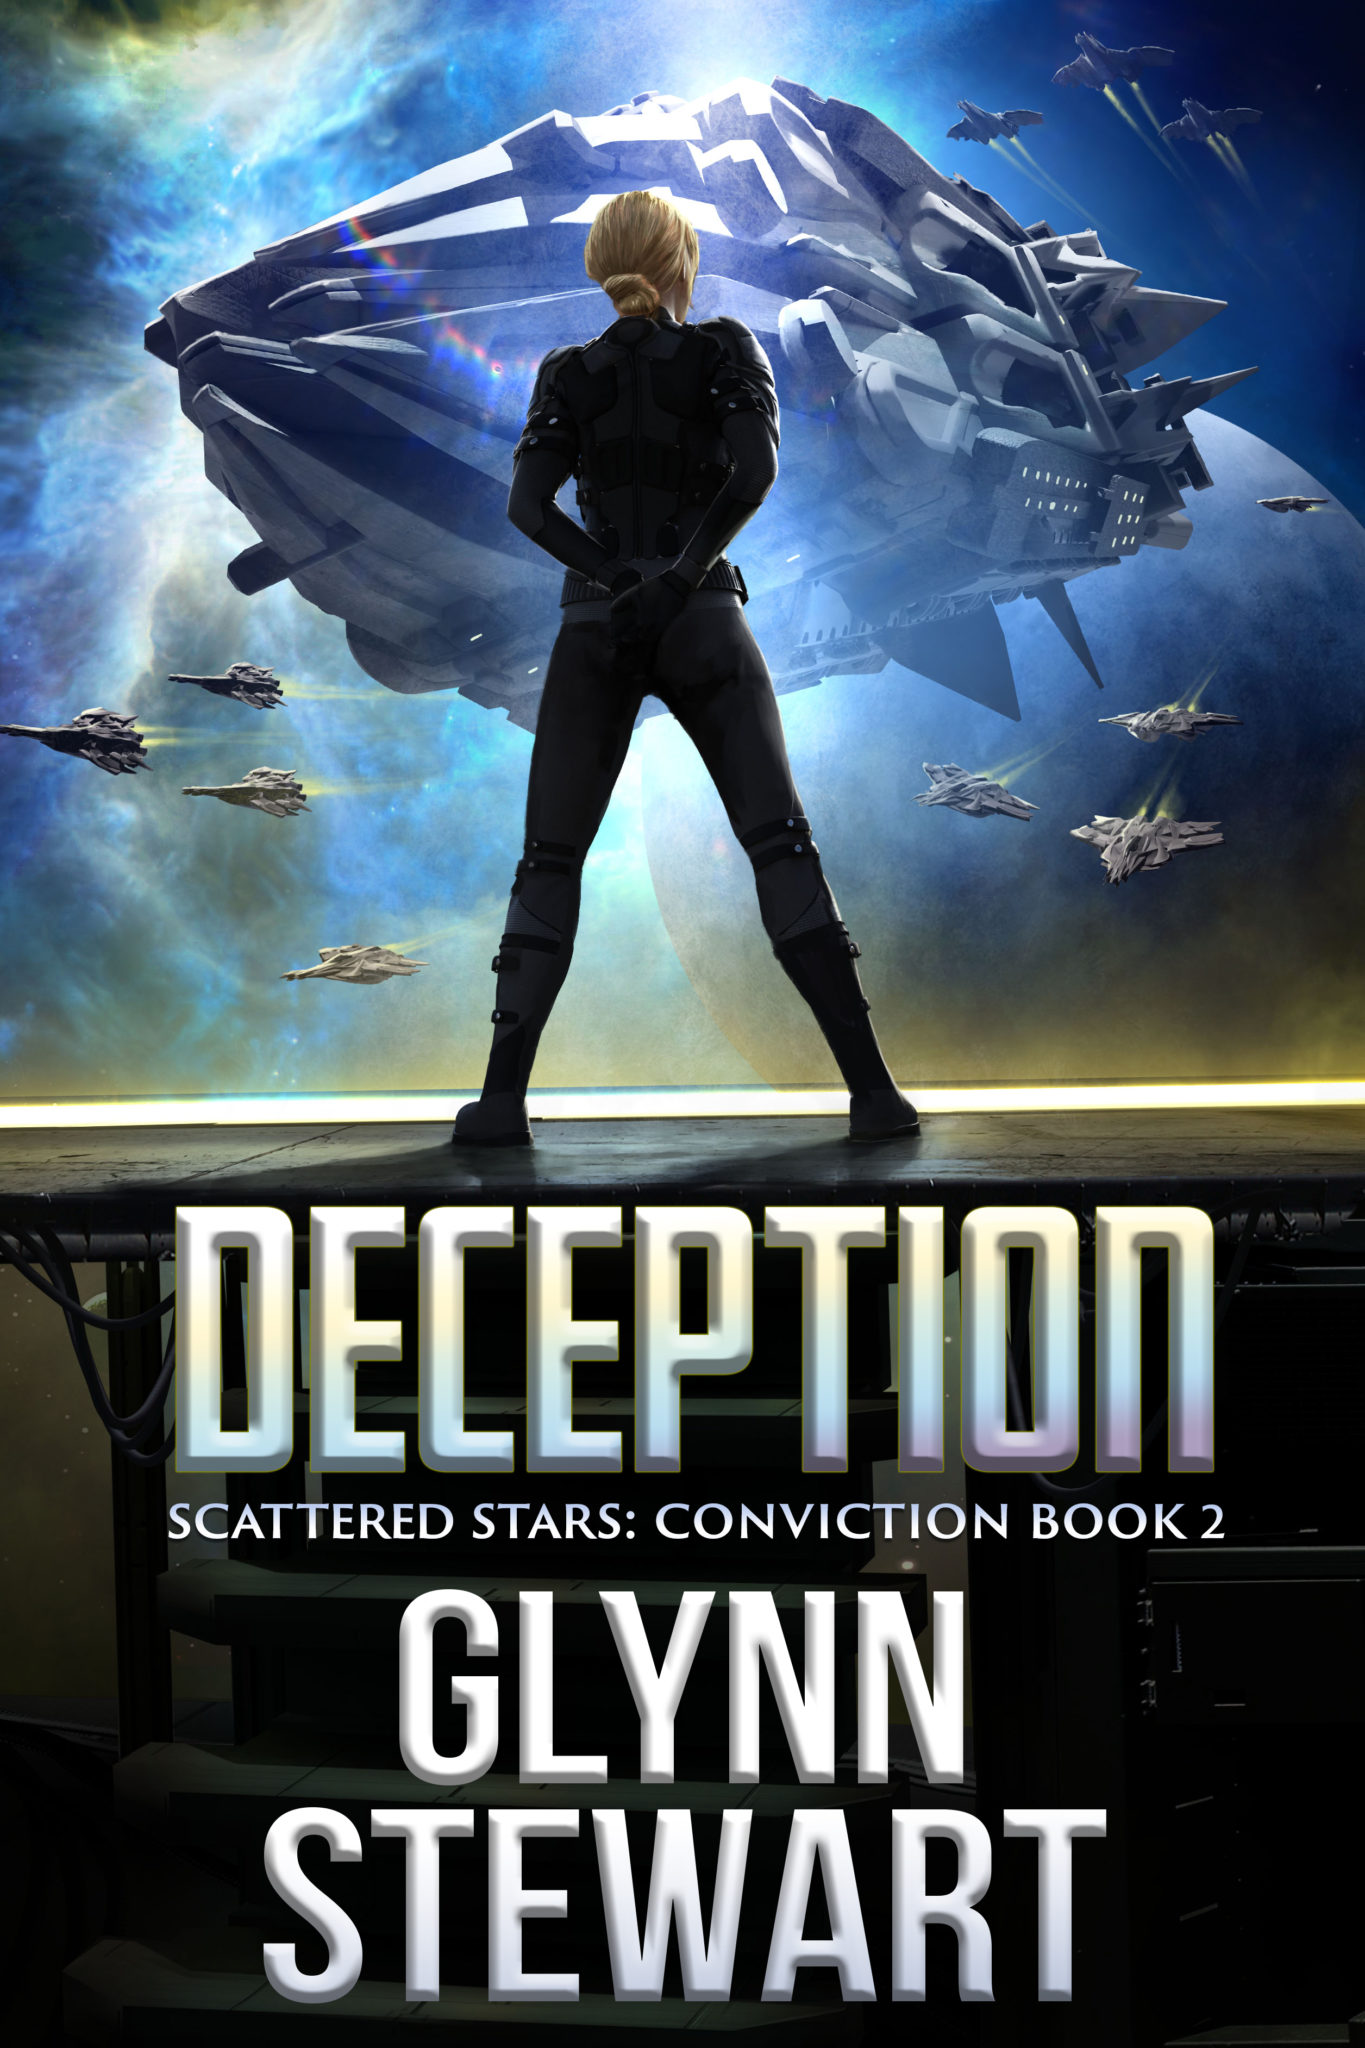 https://www.glynnstewart.com/wp-content/uploads/2020/07/deception-ebook-large-scaled.jpg